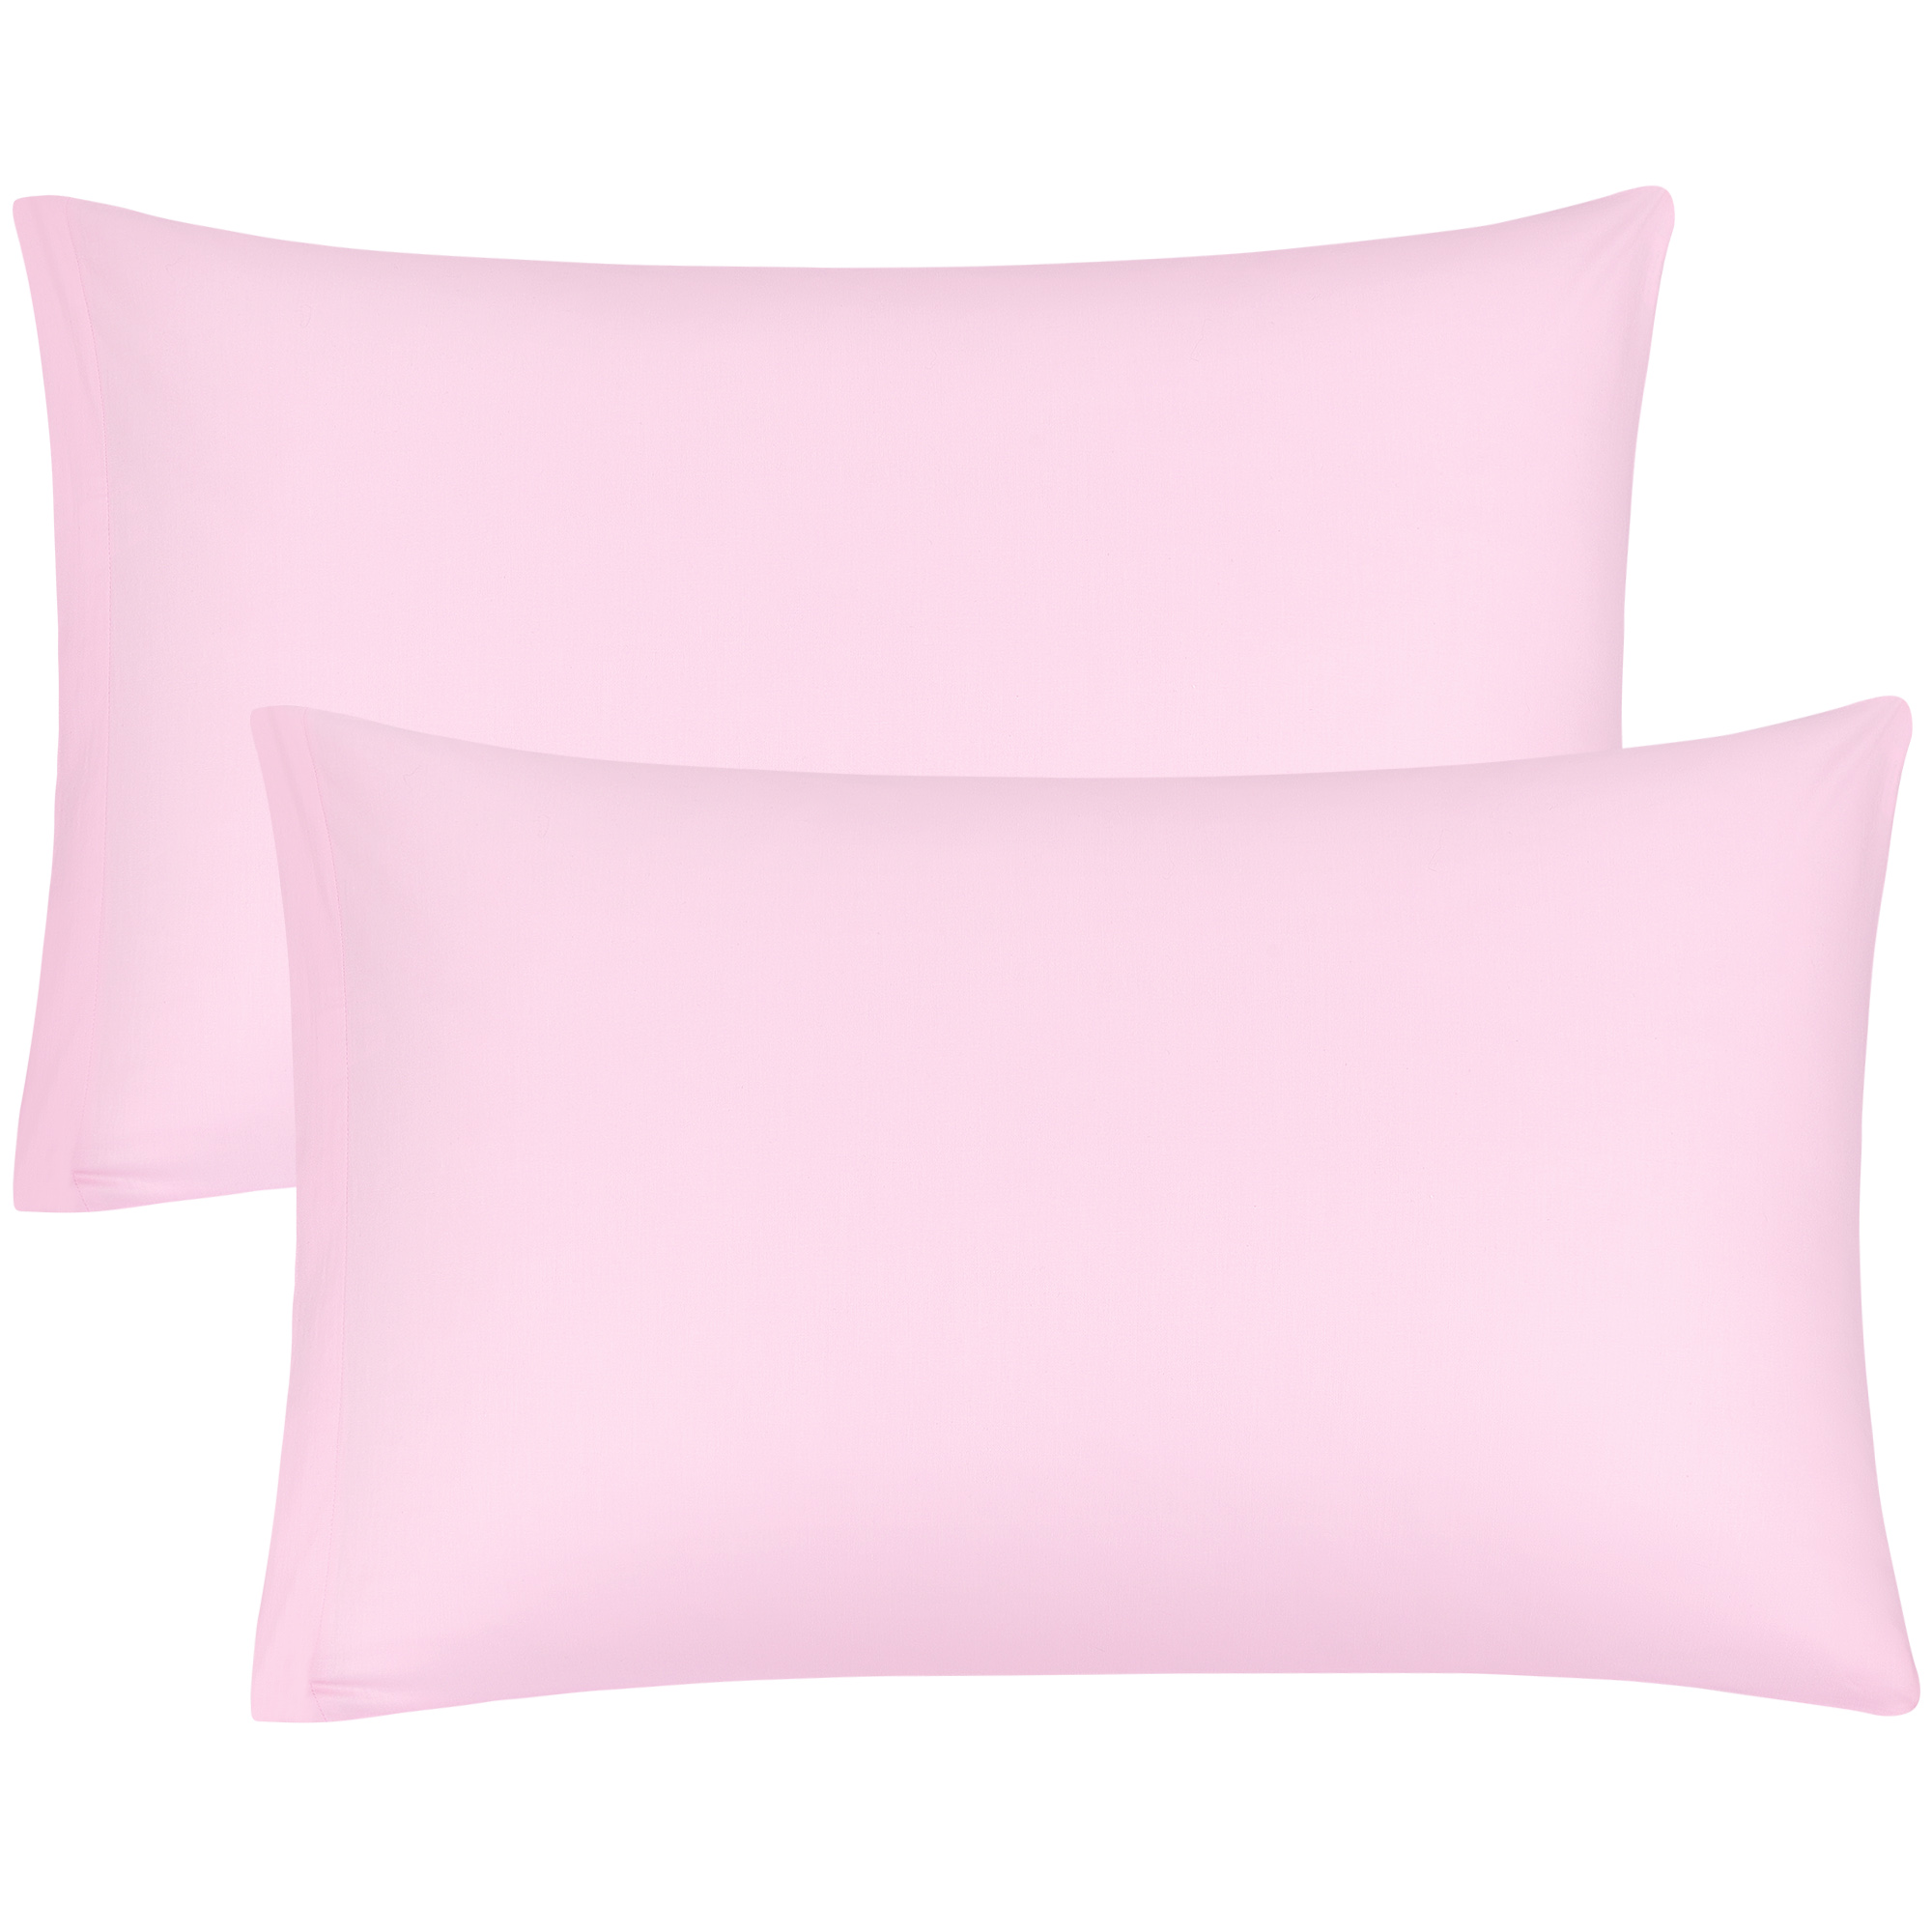 Zippered Cases Pillowcases Covers Egyptian Cotton 2-Pack (20 x 26 Inch, Pink)